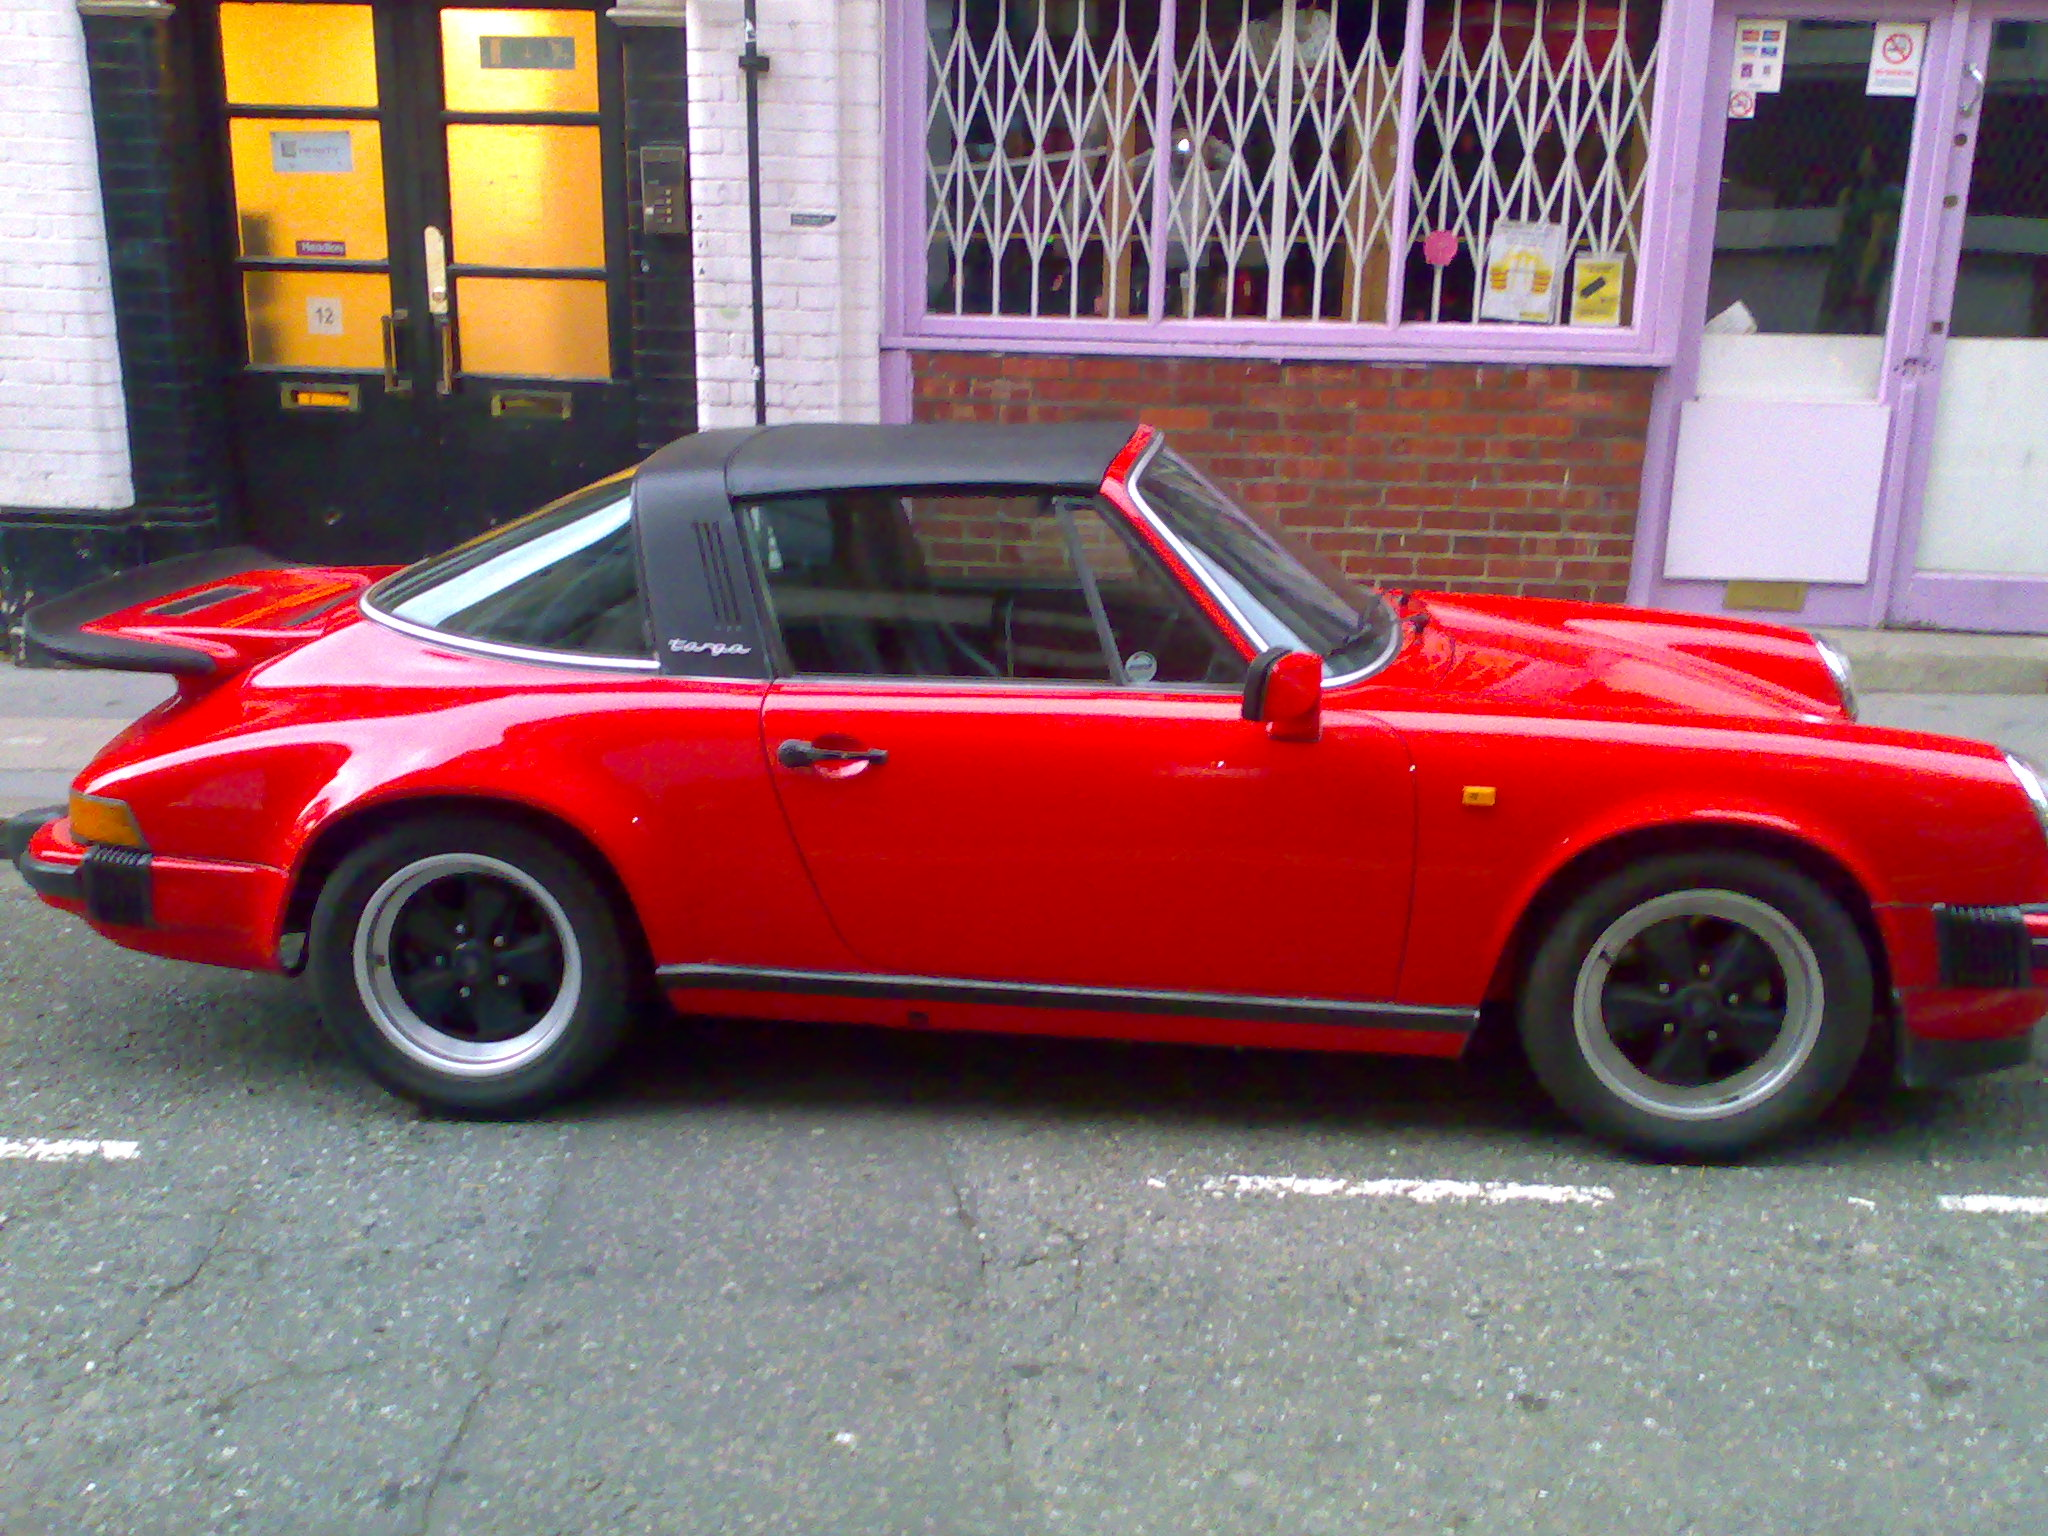 http://upload.wikimedia.org/wikipedia/commons/a/ae/Red_Porsche_911_SC_Targa.jpg